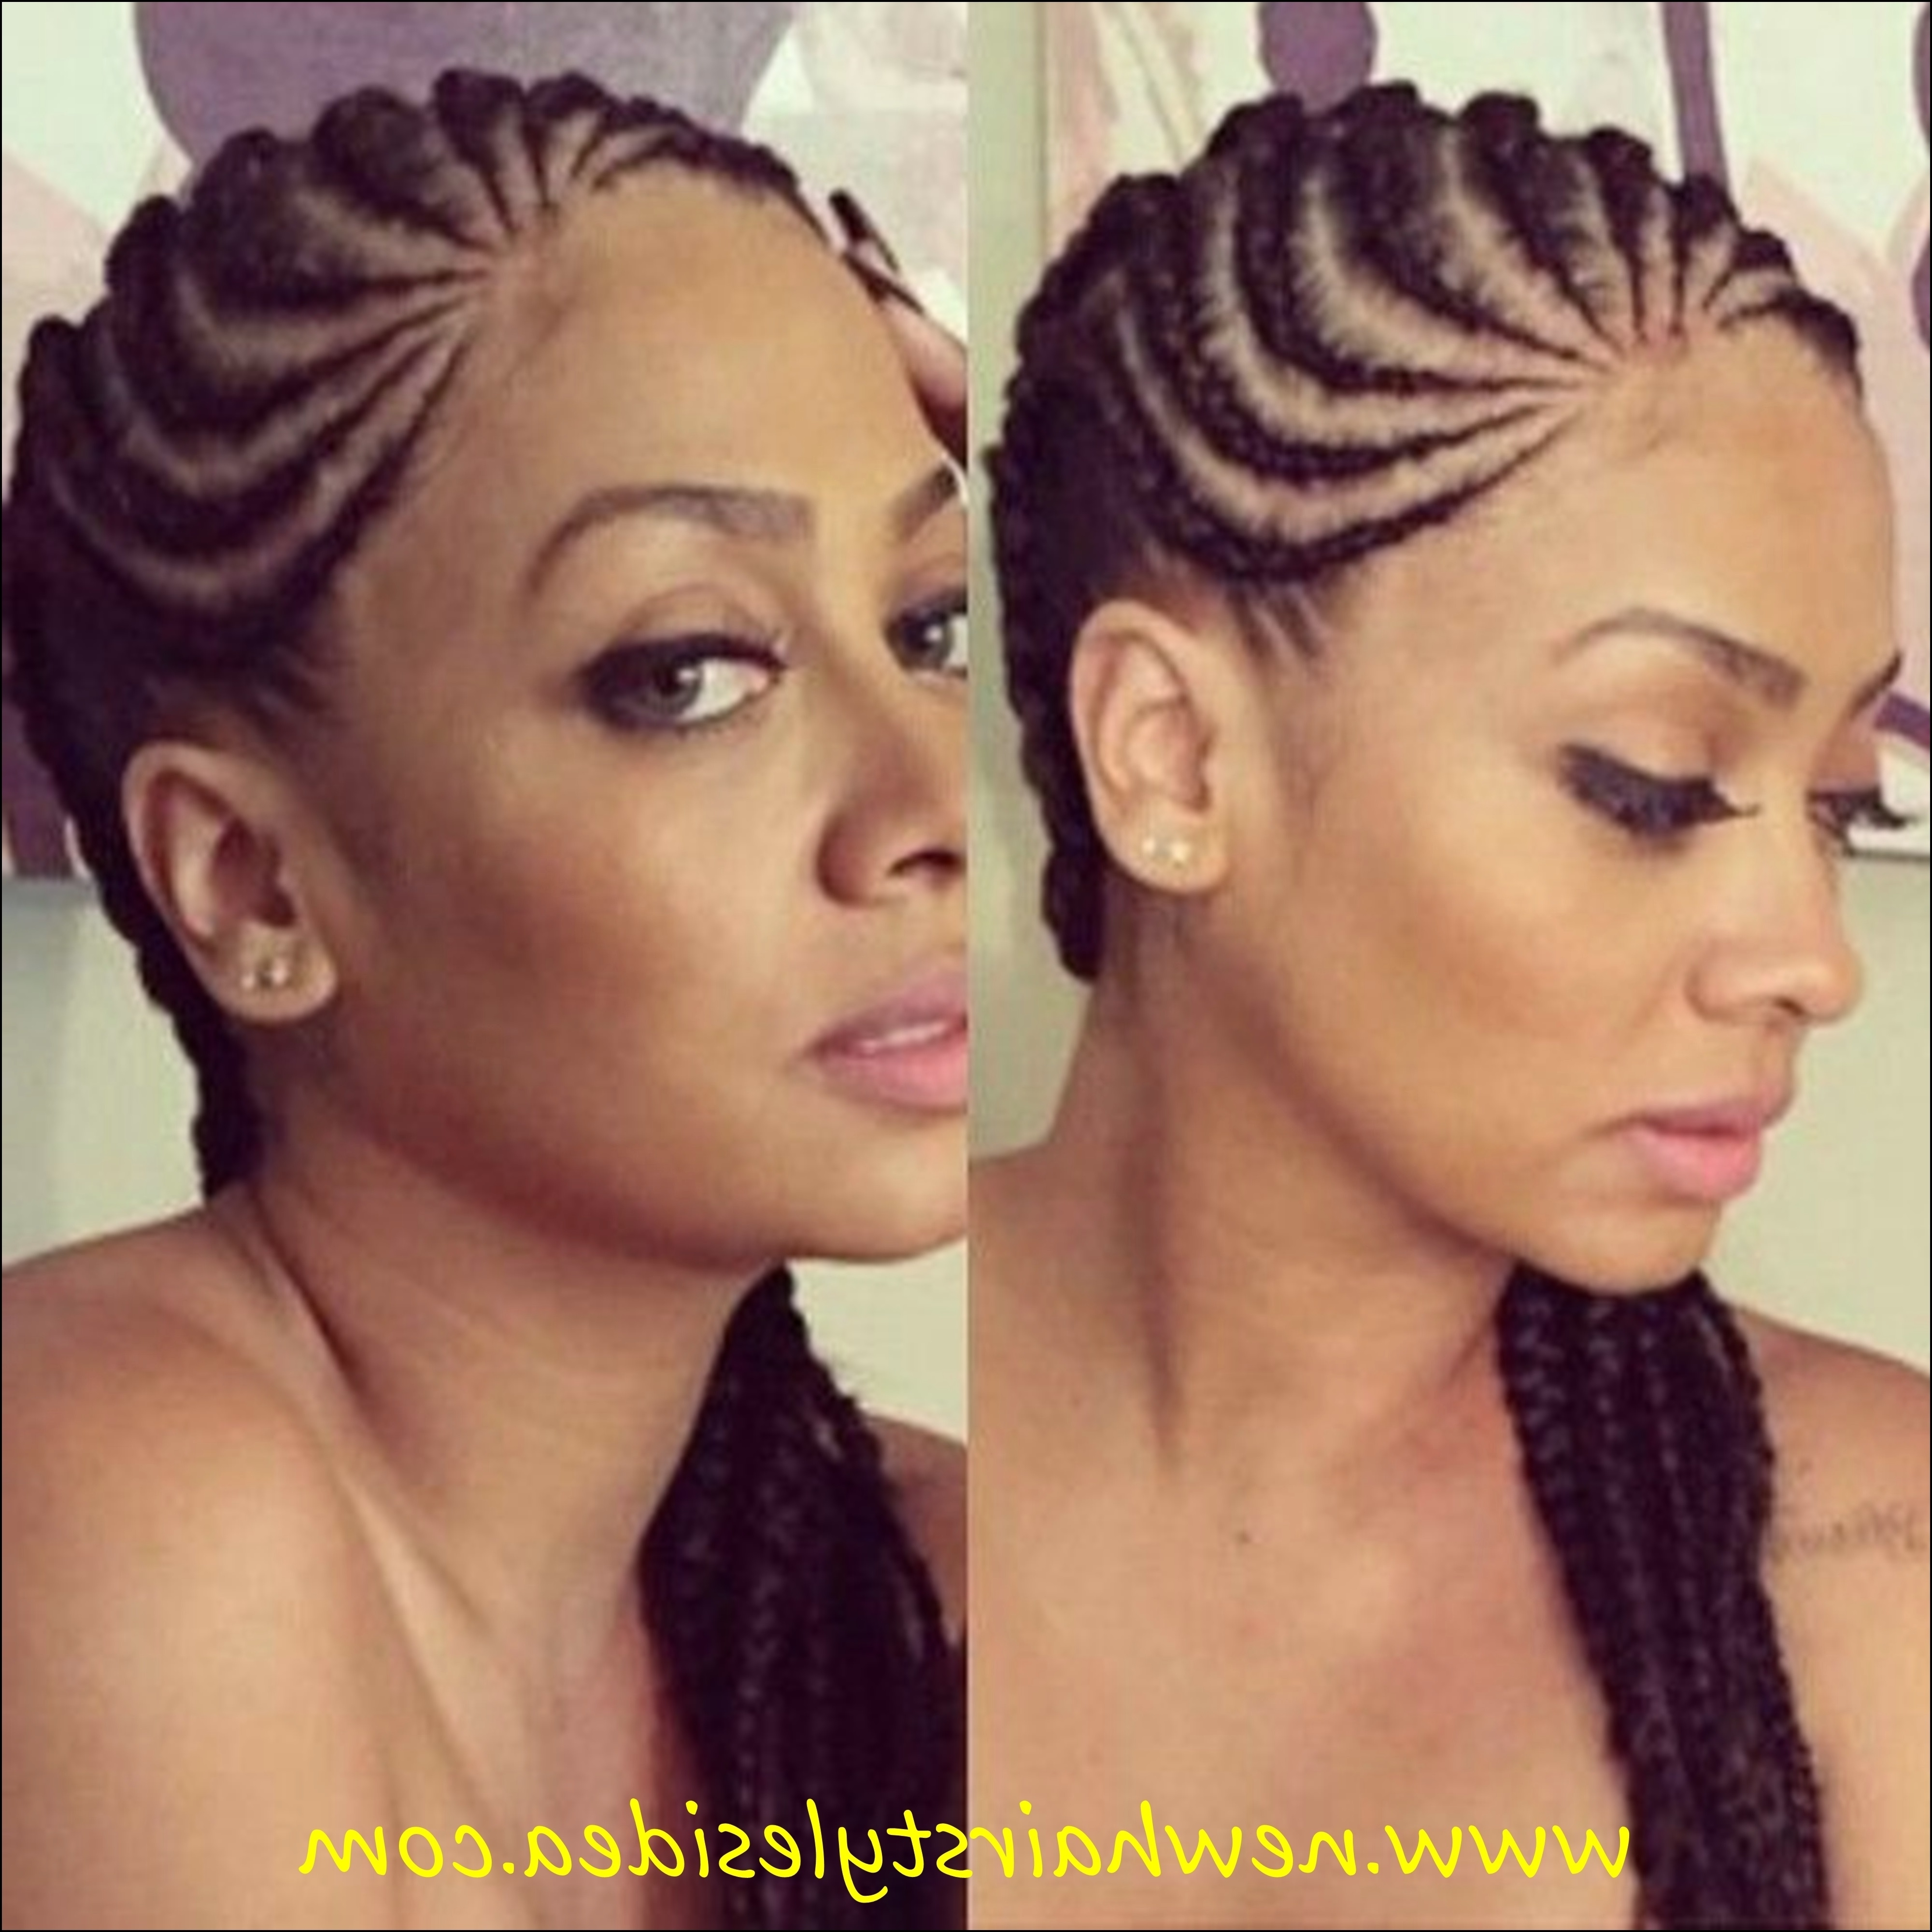 Cornrows Styles For Oval Faces Cornrow Hairstyles For From Modern With Regard To Recent Modern Cornrows Hairstyles (View 3 of 15)